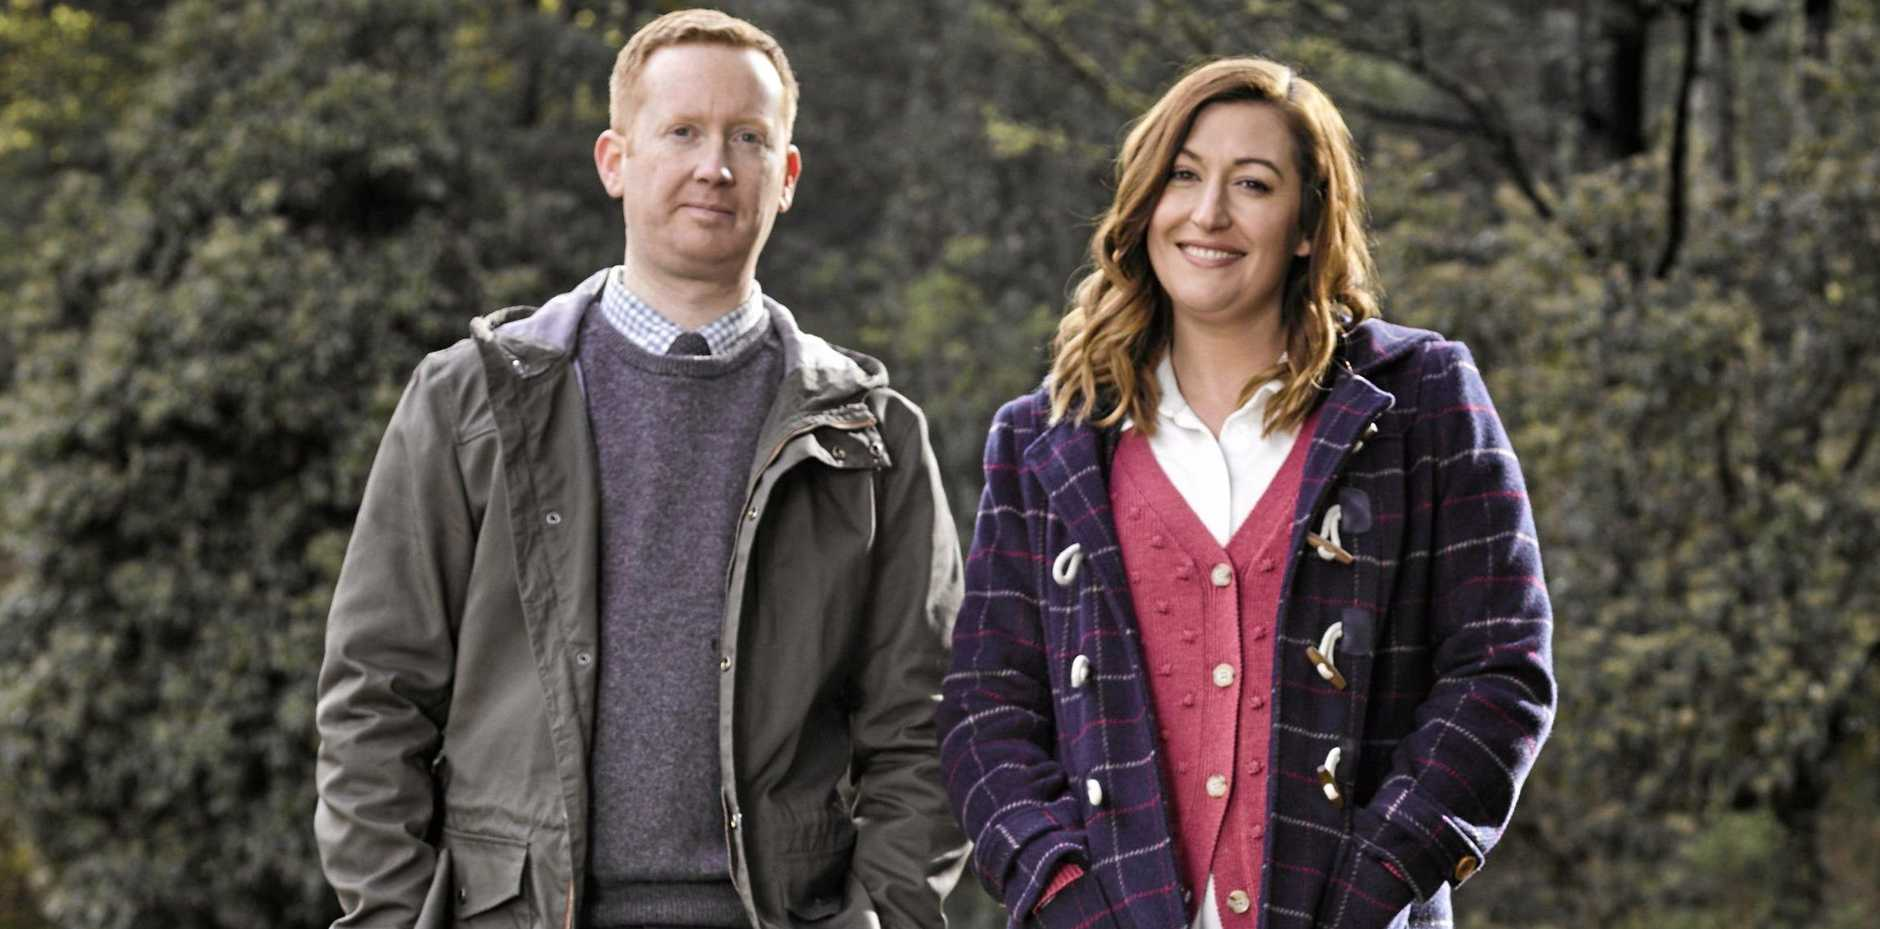 Luke McGregor and Celia Pacquola return as Daniel and Emma in season three of Rosehaven.